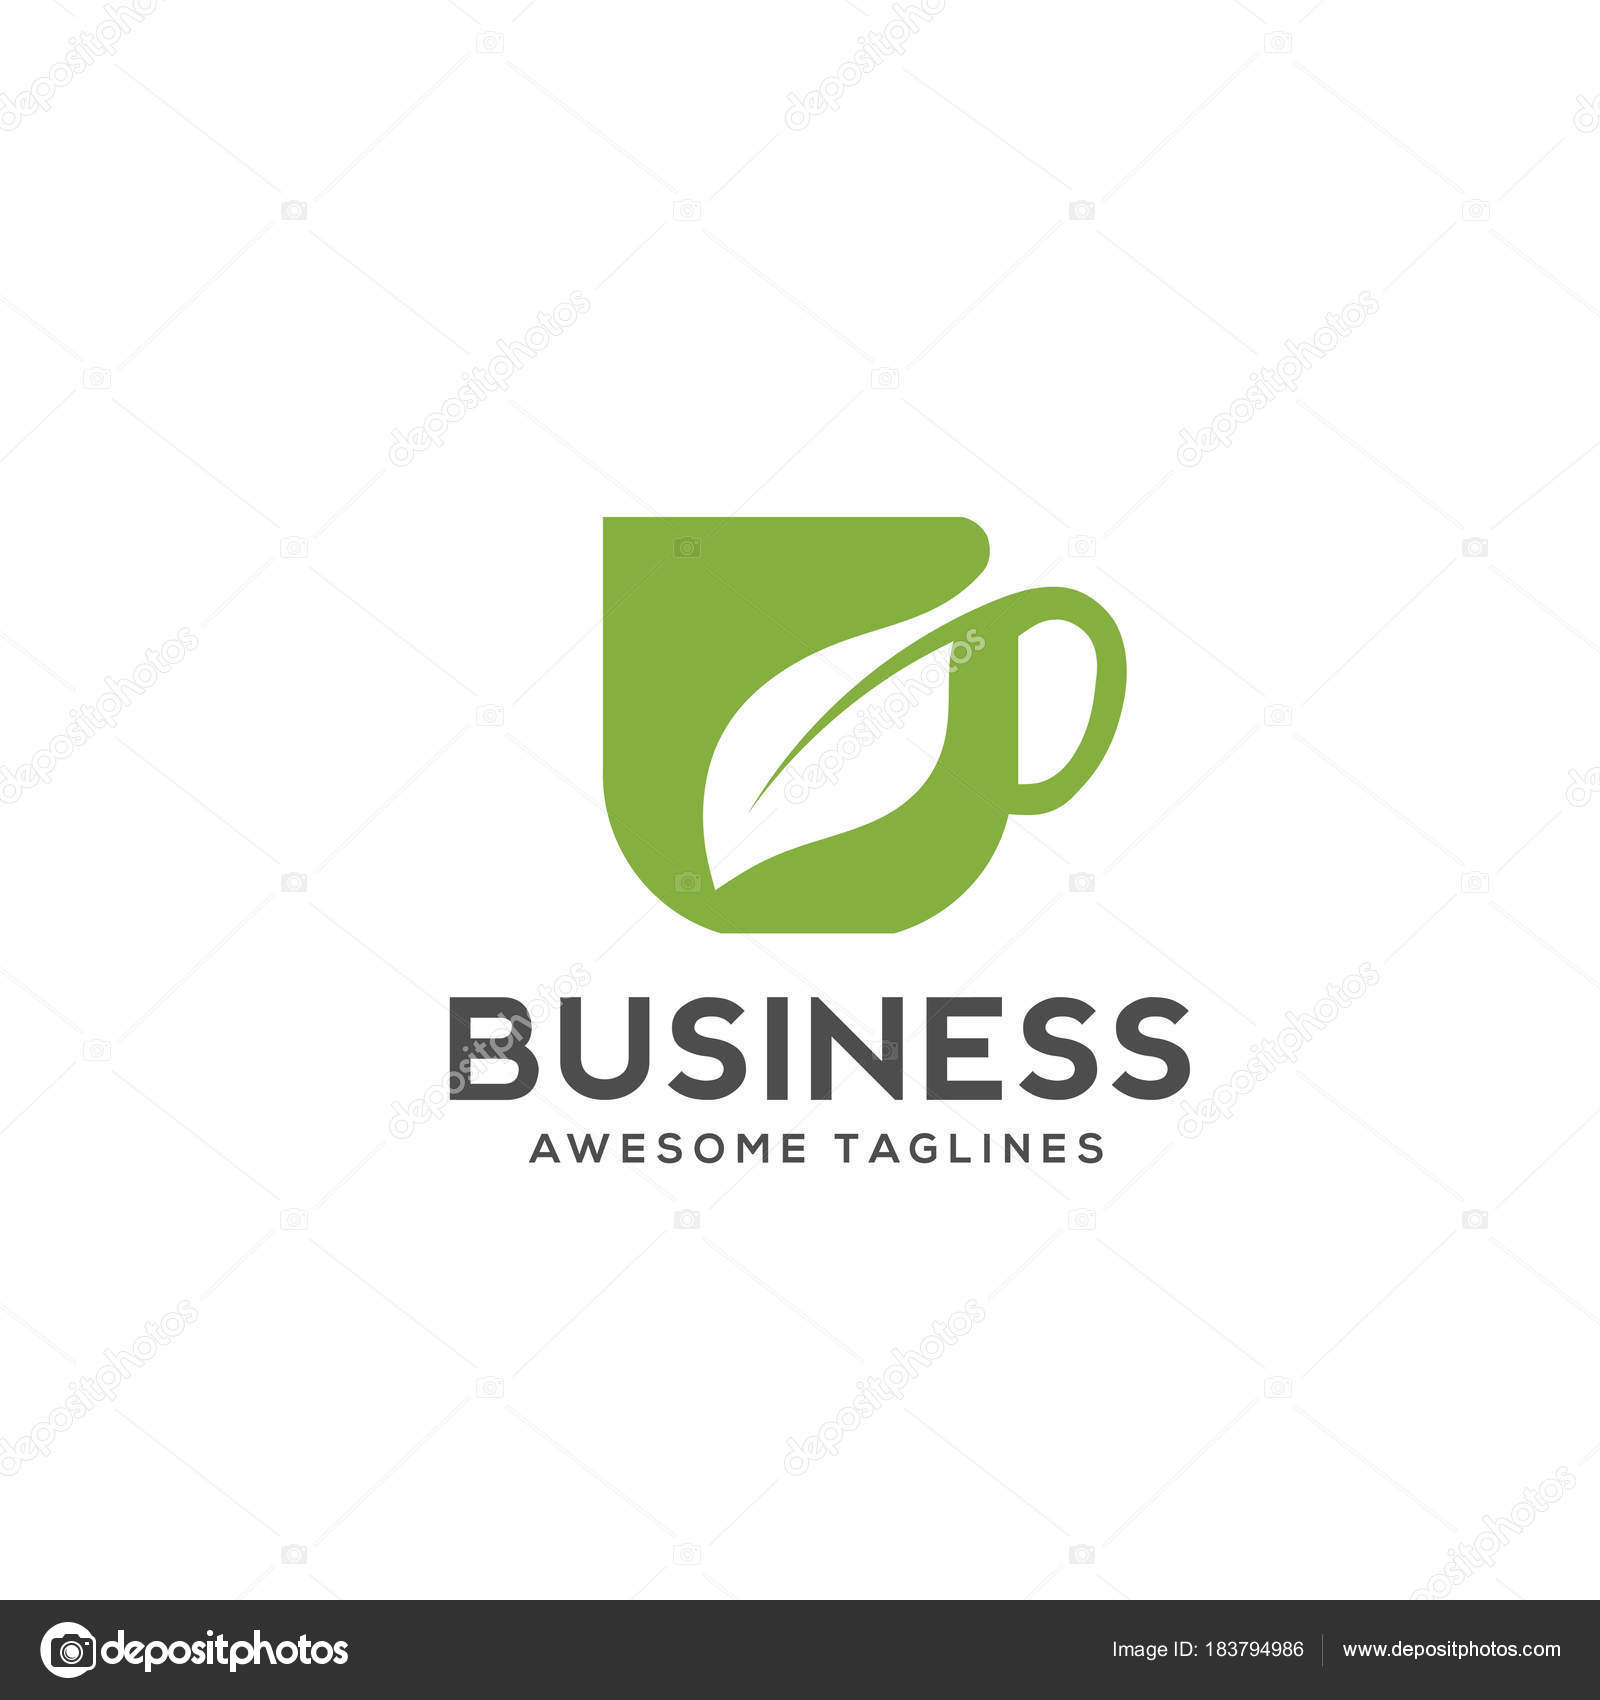 Herbal drink logo | Herbal Green Tea Cup Logo Herbal Drink